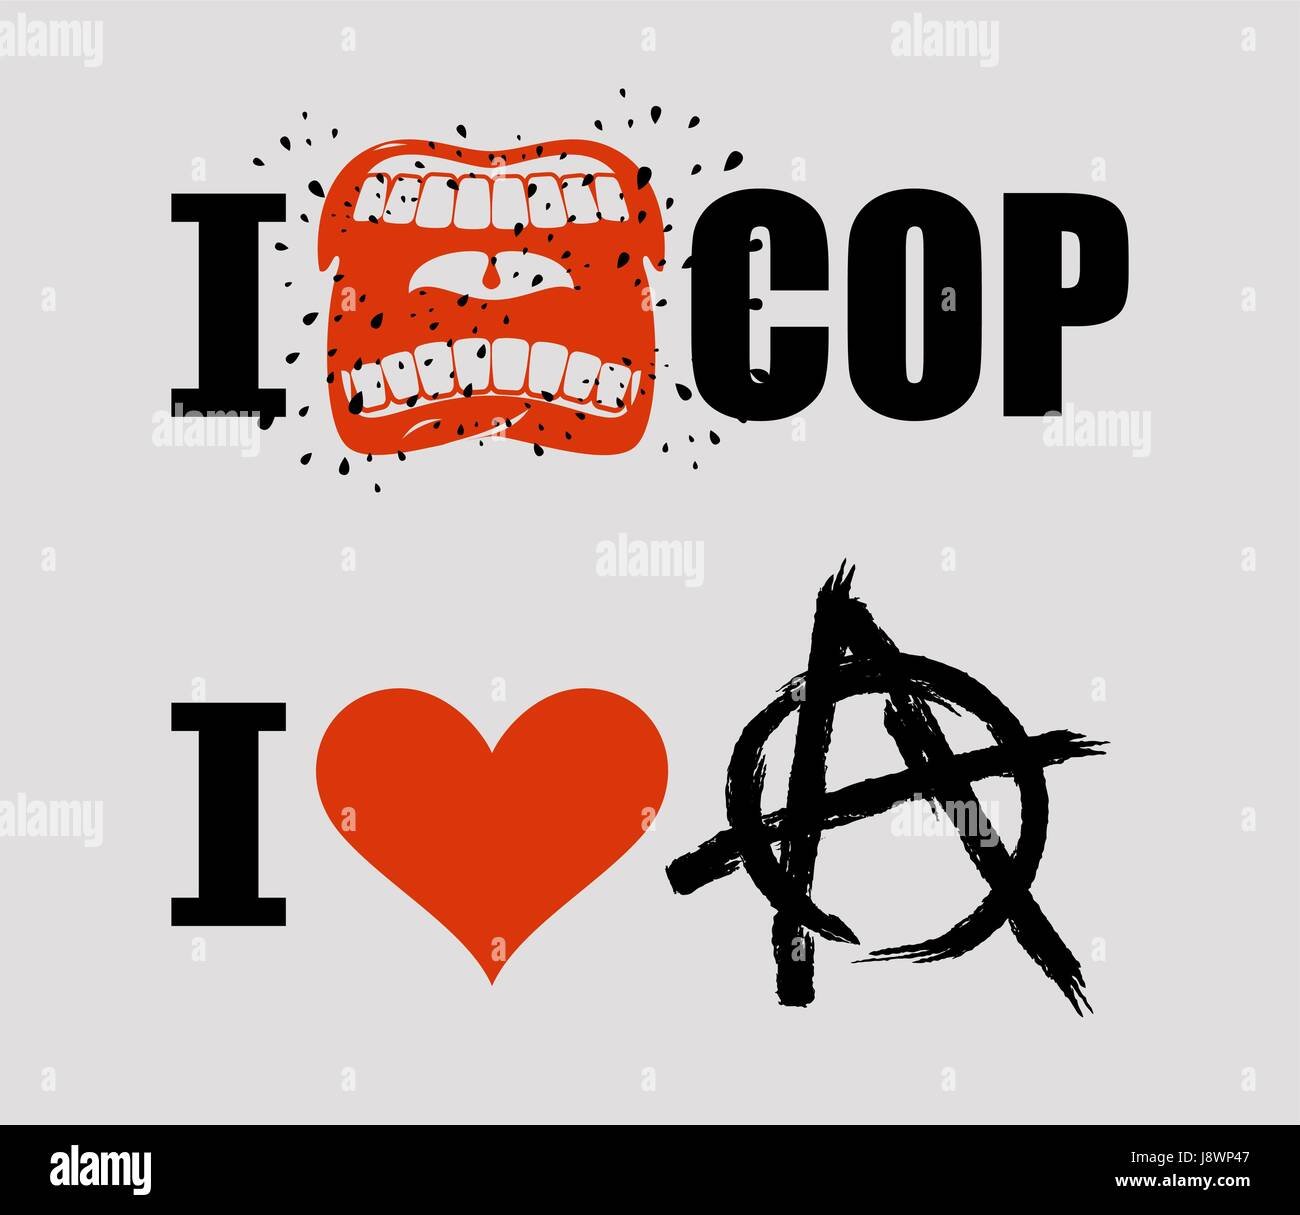 I hate cop i love anarchy loud cry of sign of aggression and i love anarchy loud cry of sign of aggression and hatred for police symbol of disorder and chaos emblem of arbitrariness and lack of st biocorpaavc Image collections